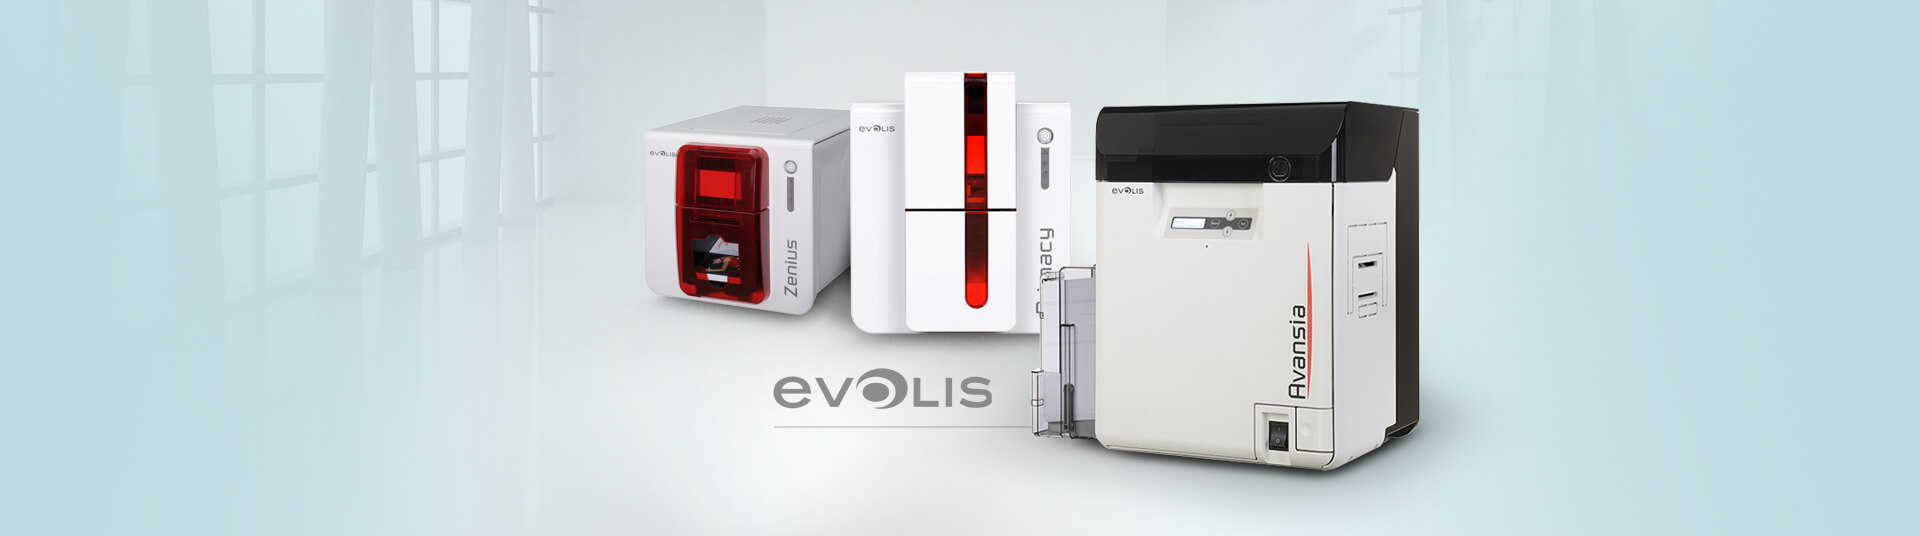 Evolis Photo ID Printers